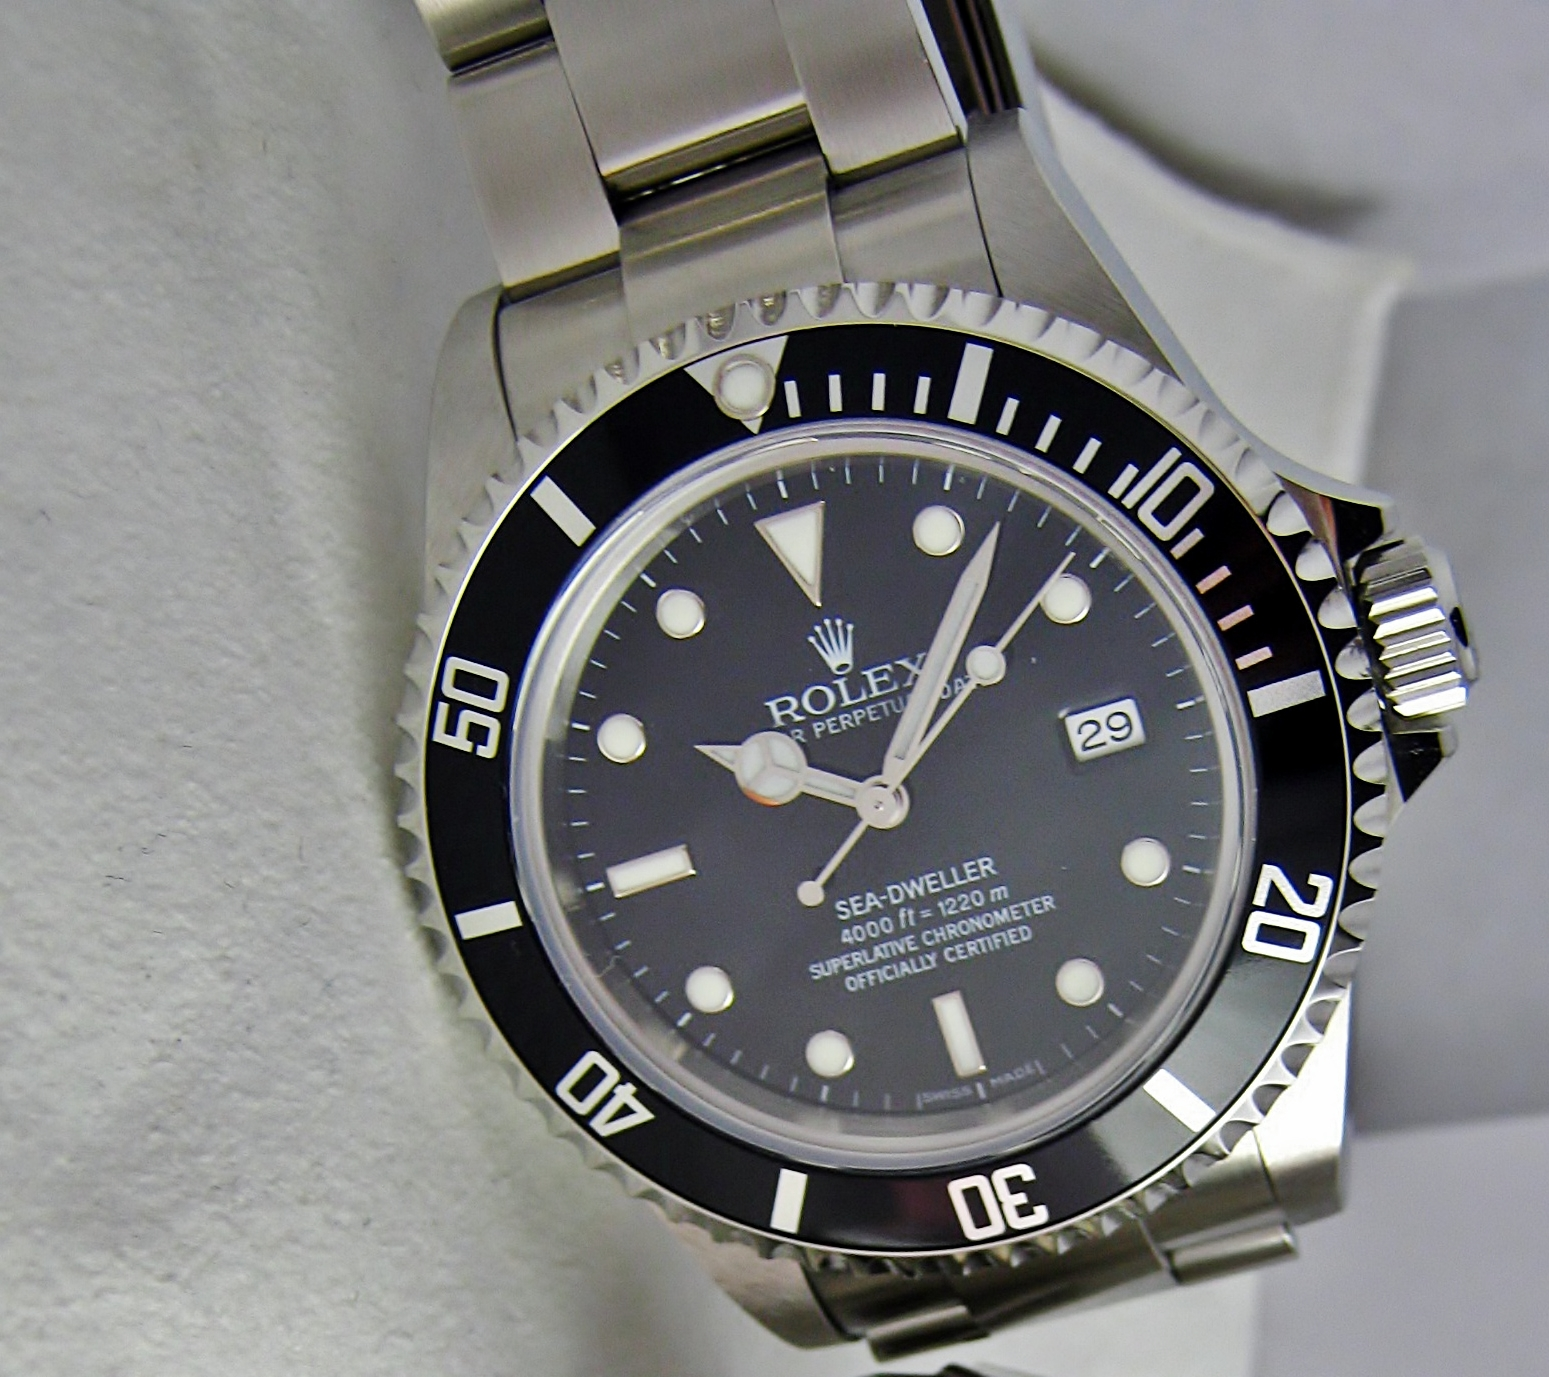 Rolex Sea Dweller Wikipedia